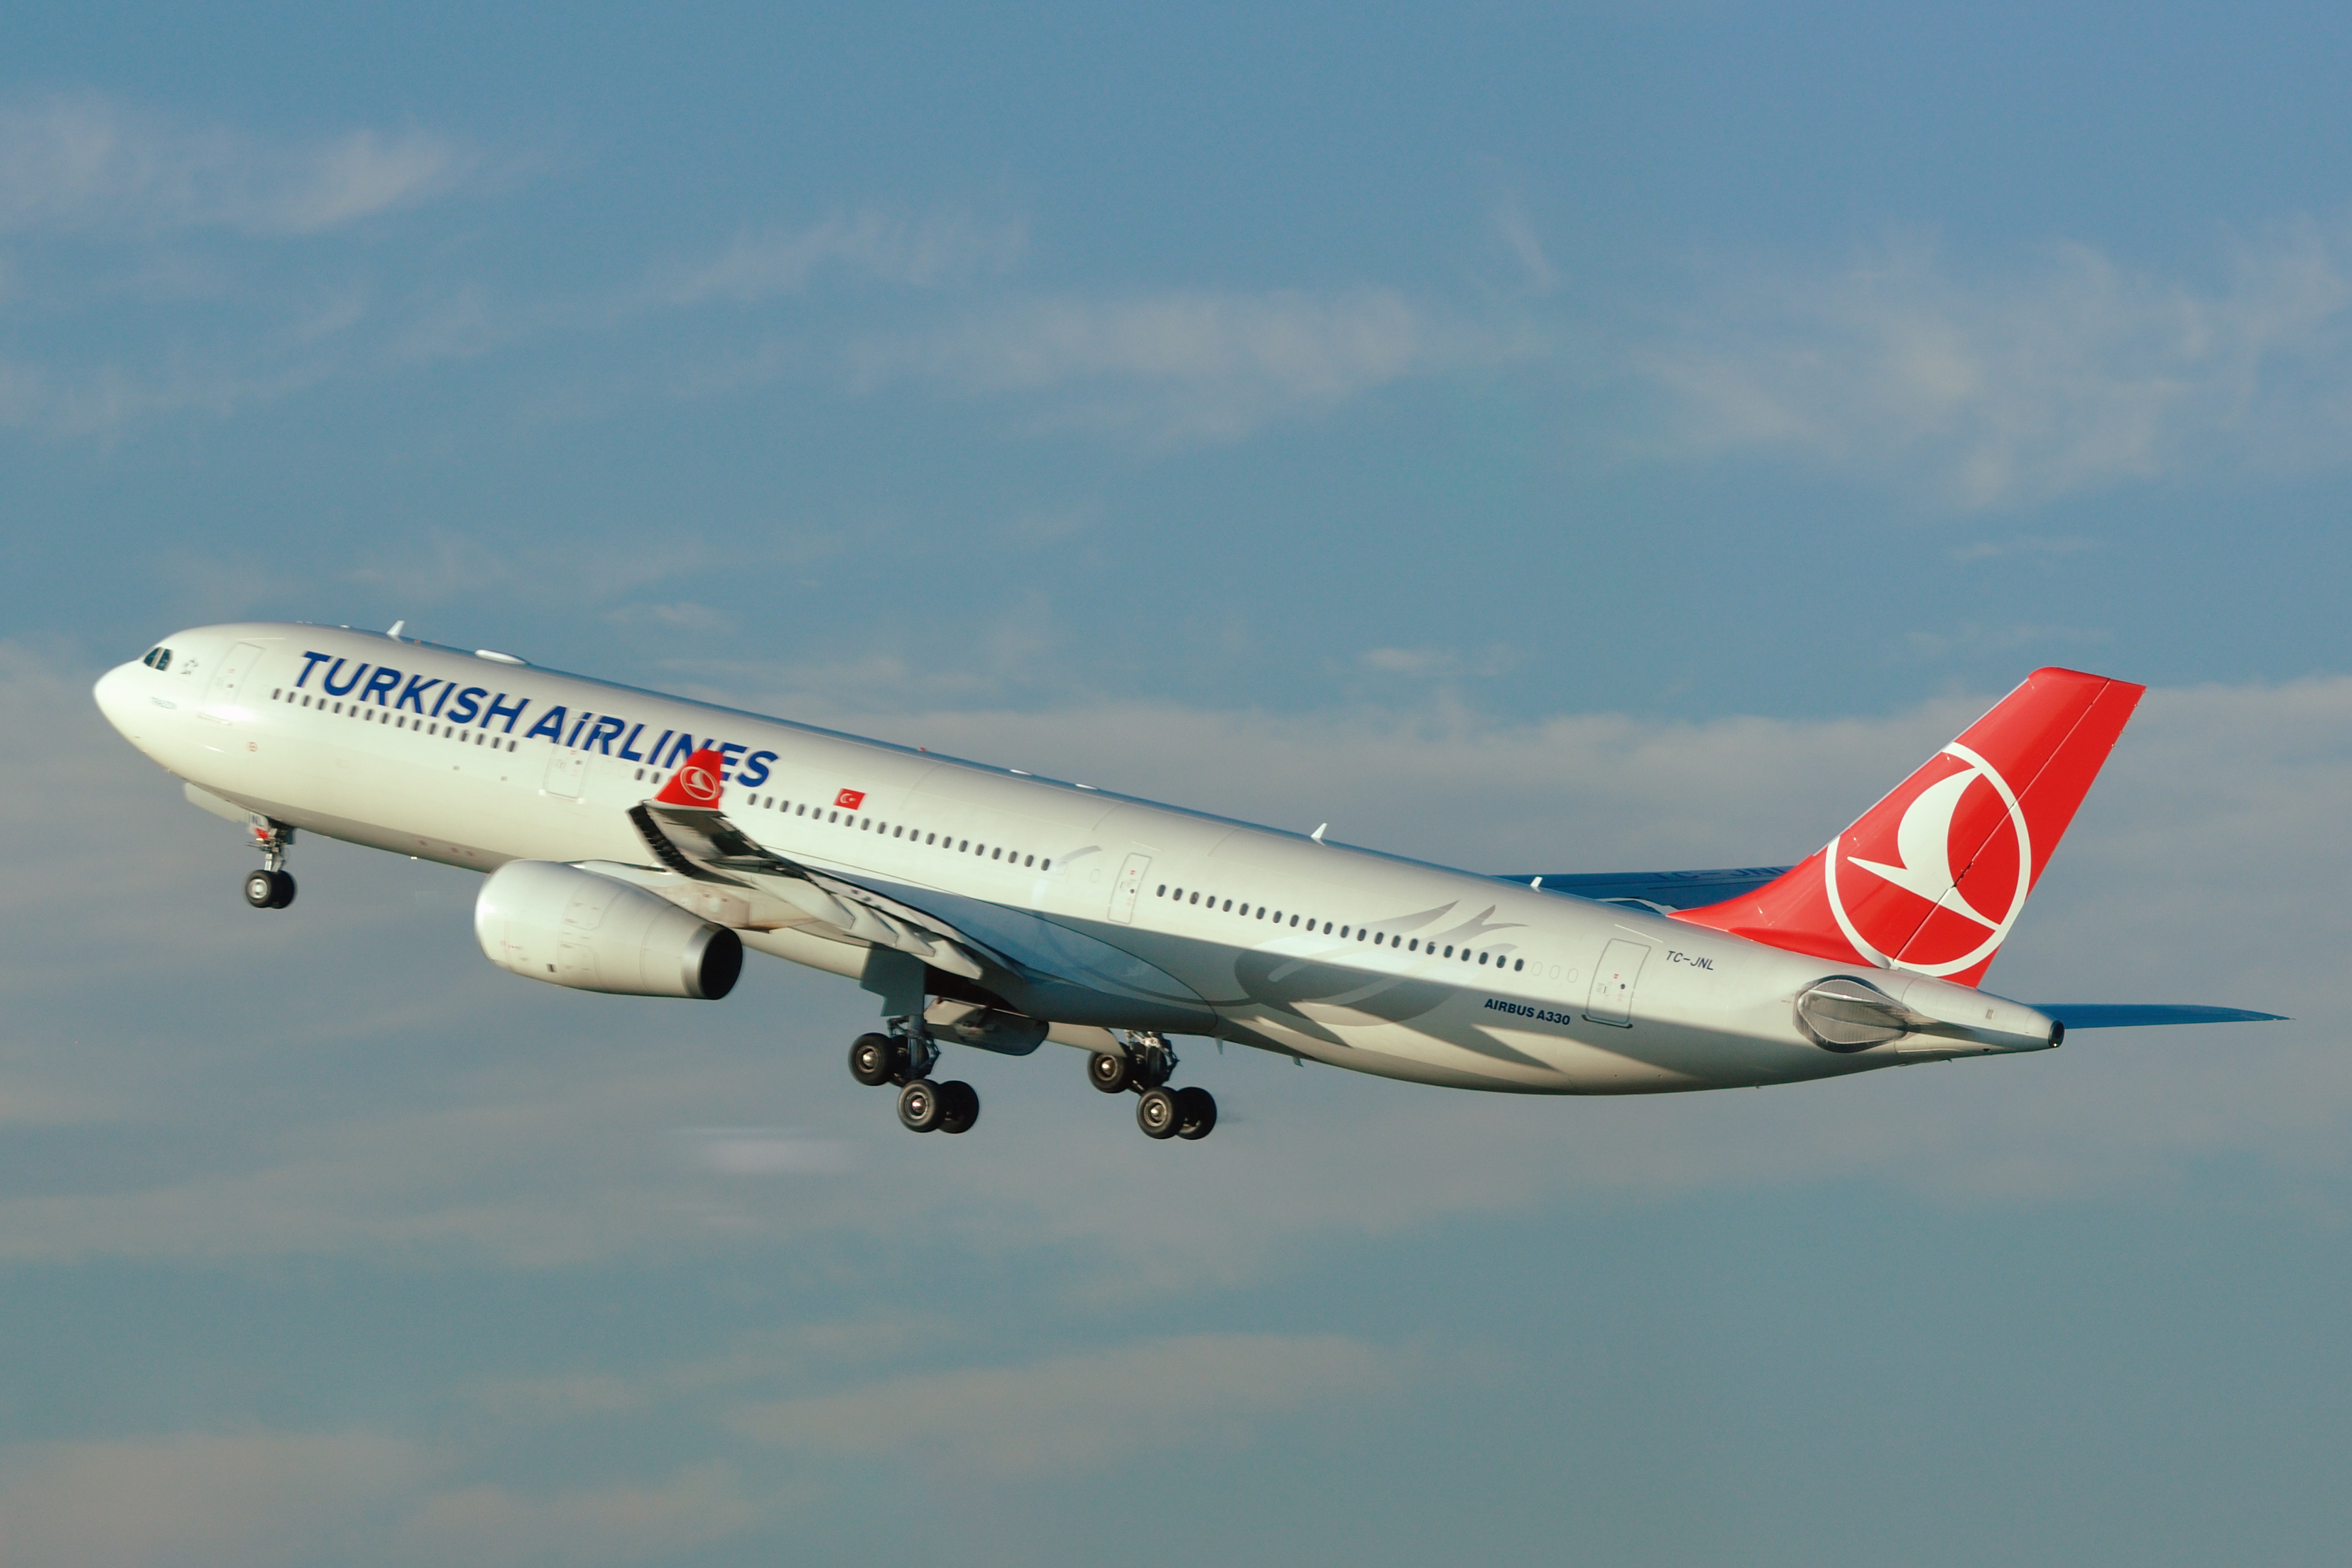 Airbus A330-300 fly fra Turkish Airlines. (Foto: Hansueli Krapf / Wikimedia Commons)